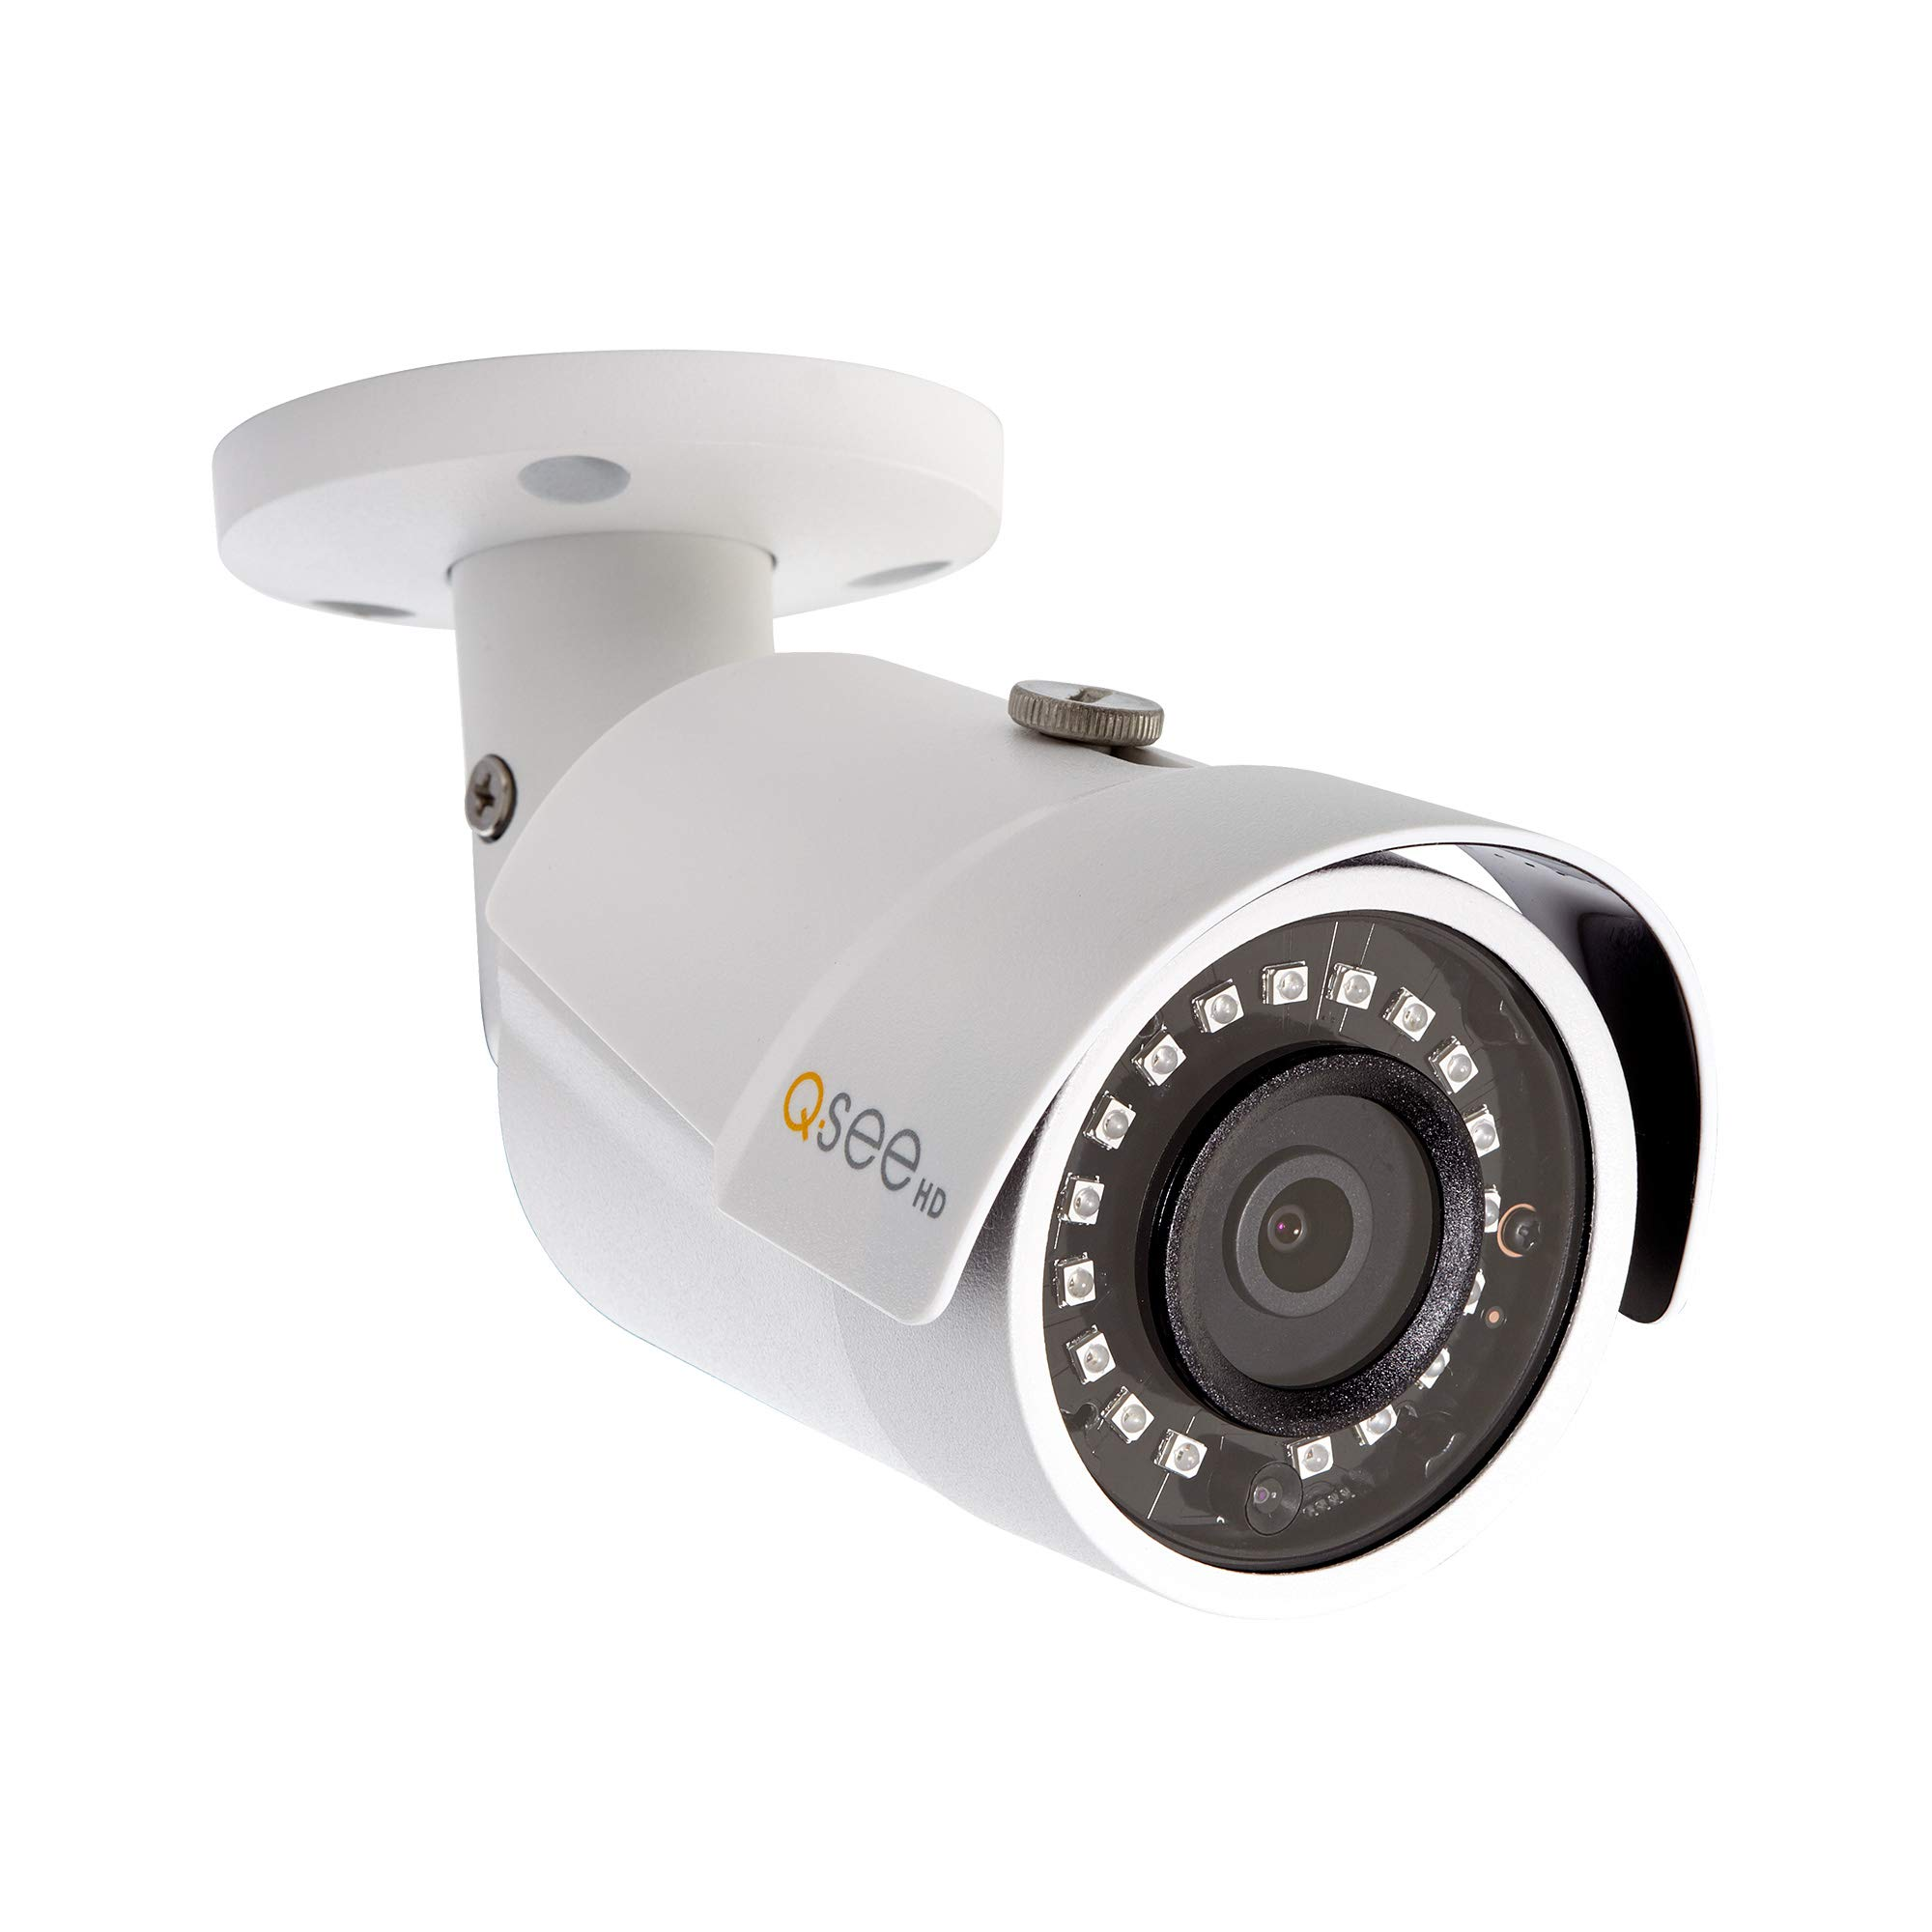 Q-See Home Security Add On Camera, 1080P IP HD Bullet Camera, Night Vision, Indoor and Outdoor Add-On Bullet Camera, White (QCN8082B)